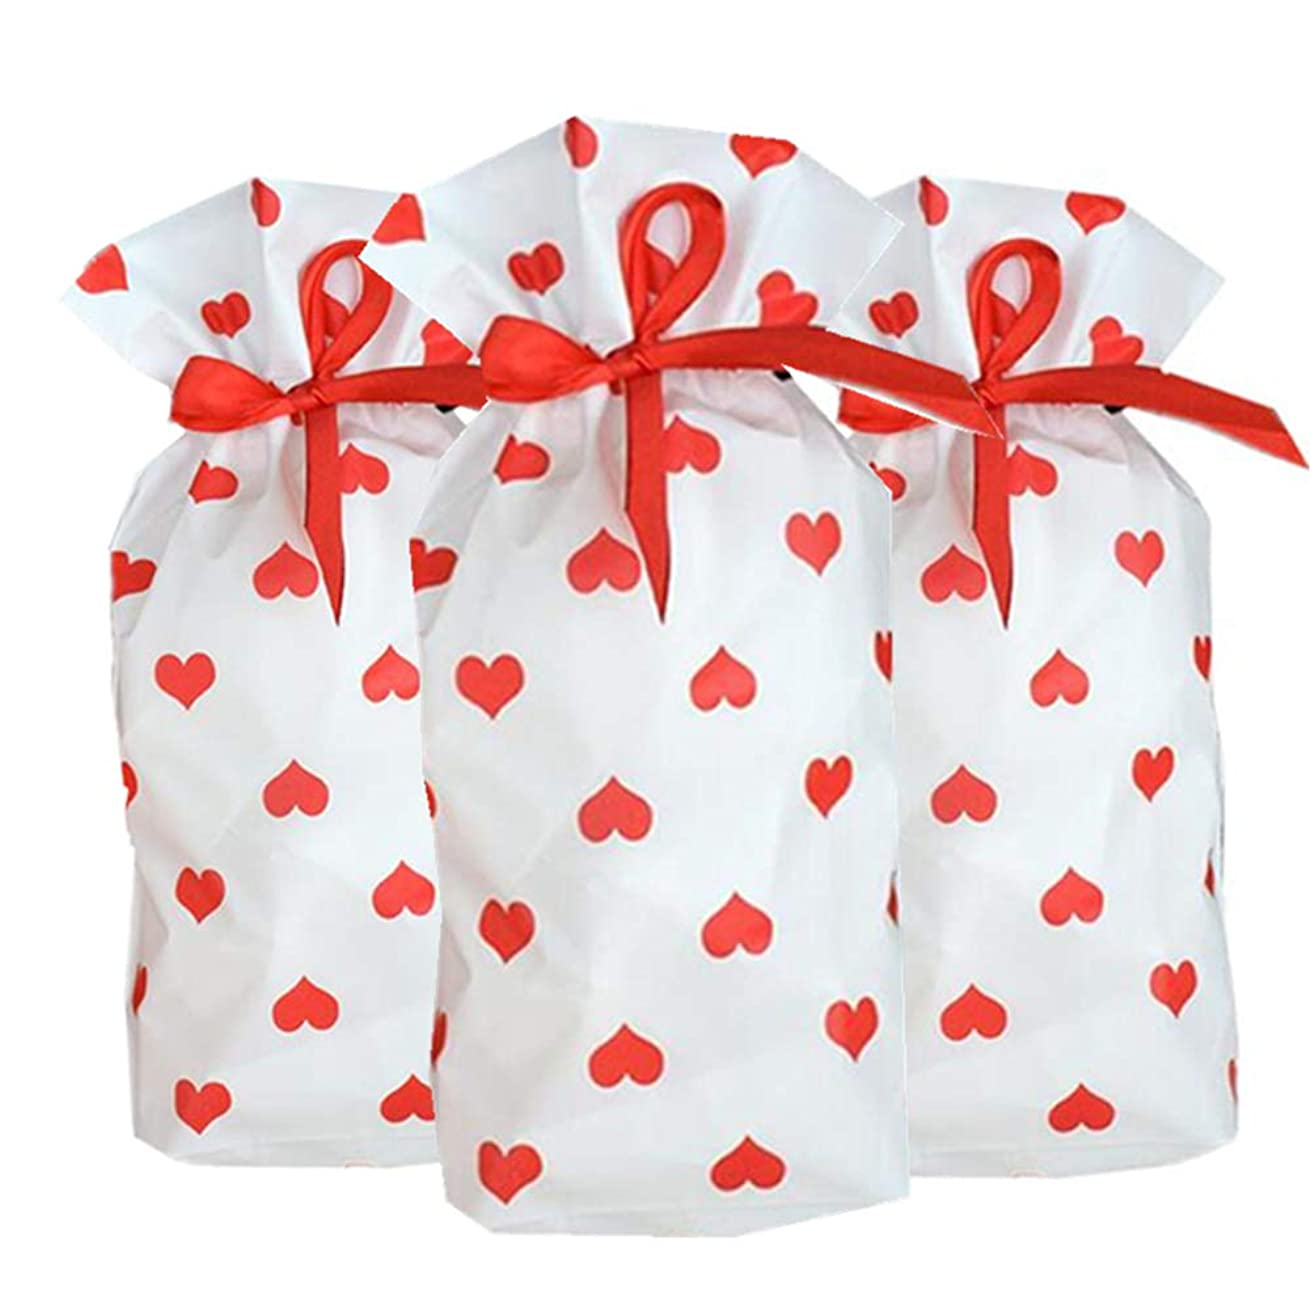 50pcs Red Heart Cookie Bag Plastic Drawstring Bags,Party Favor Bags,Gift, Wedding,Package Bag